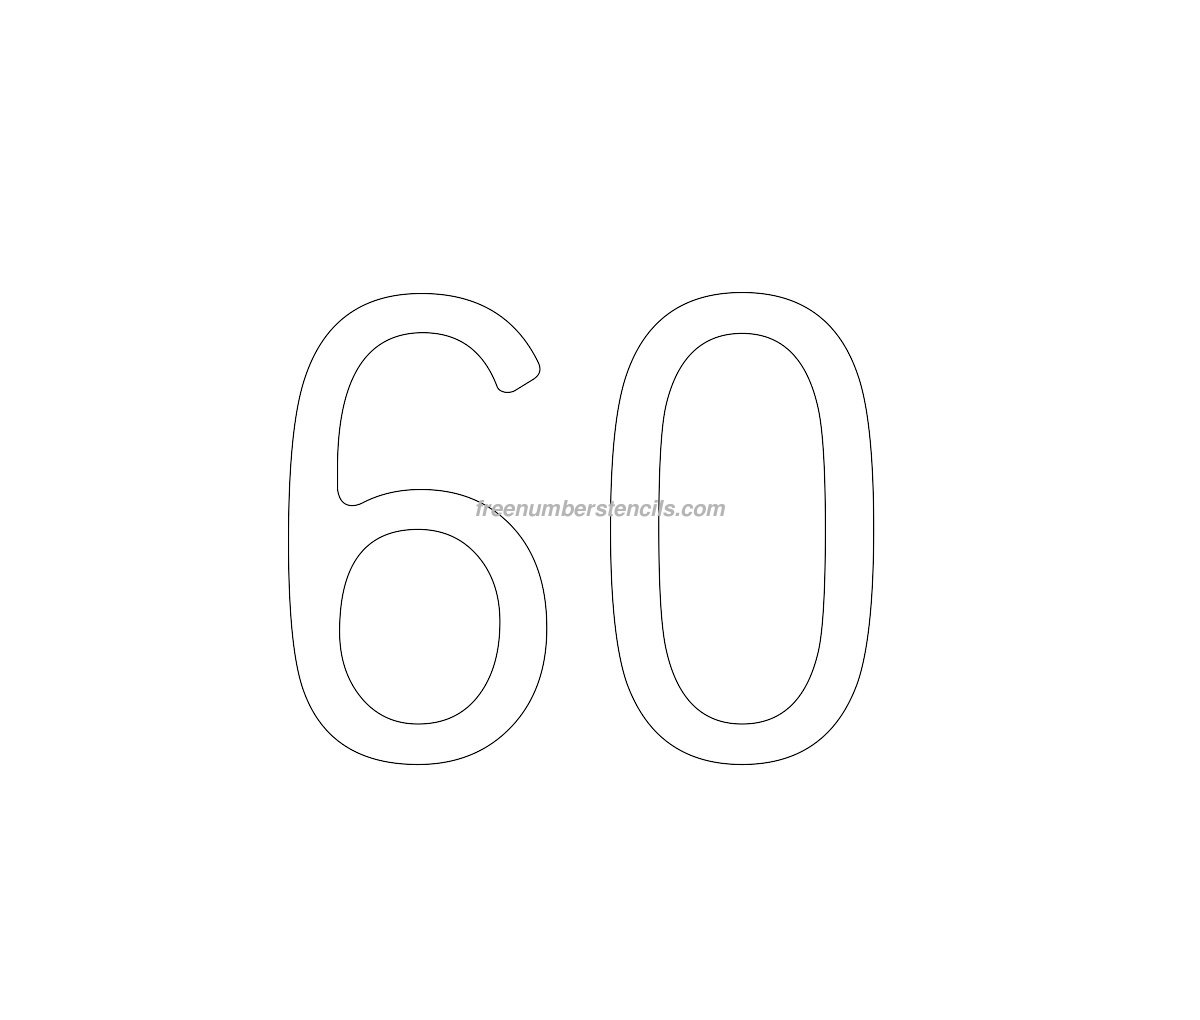 cake free 60 number stencil